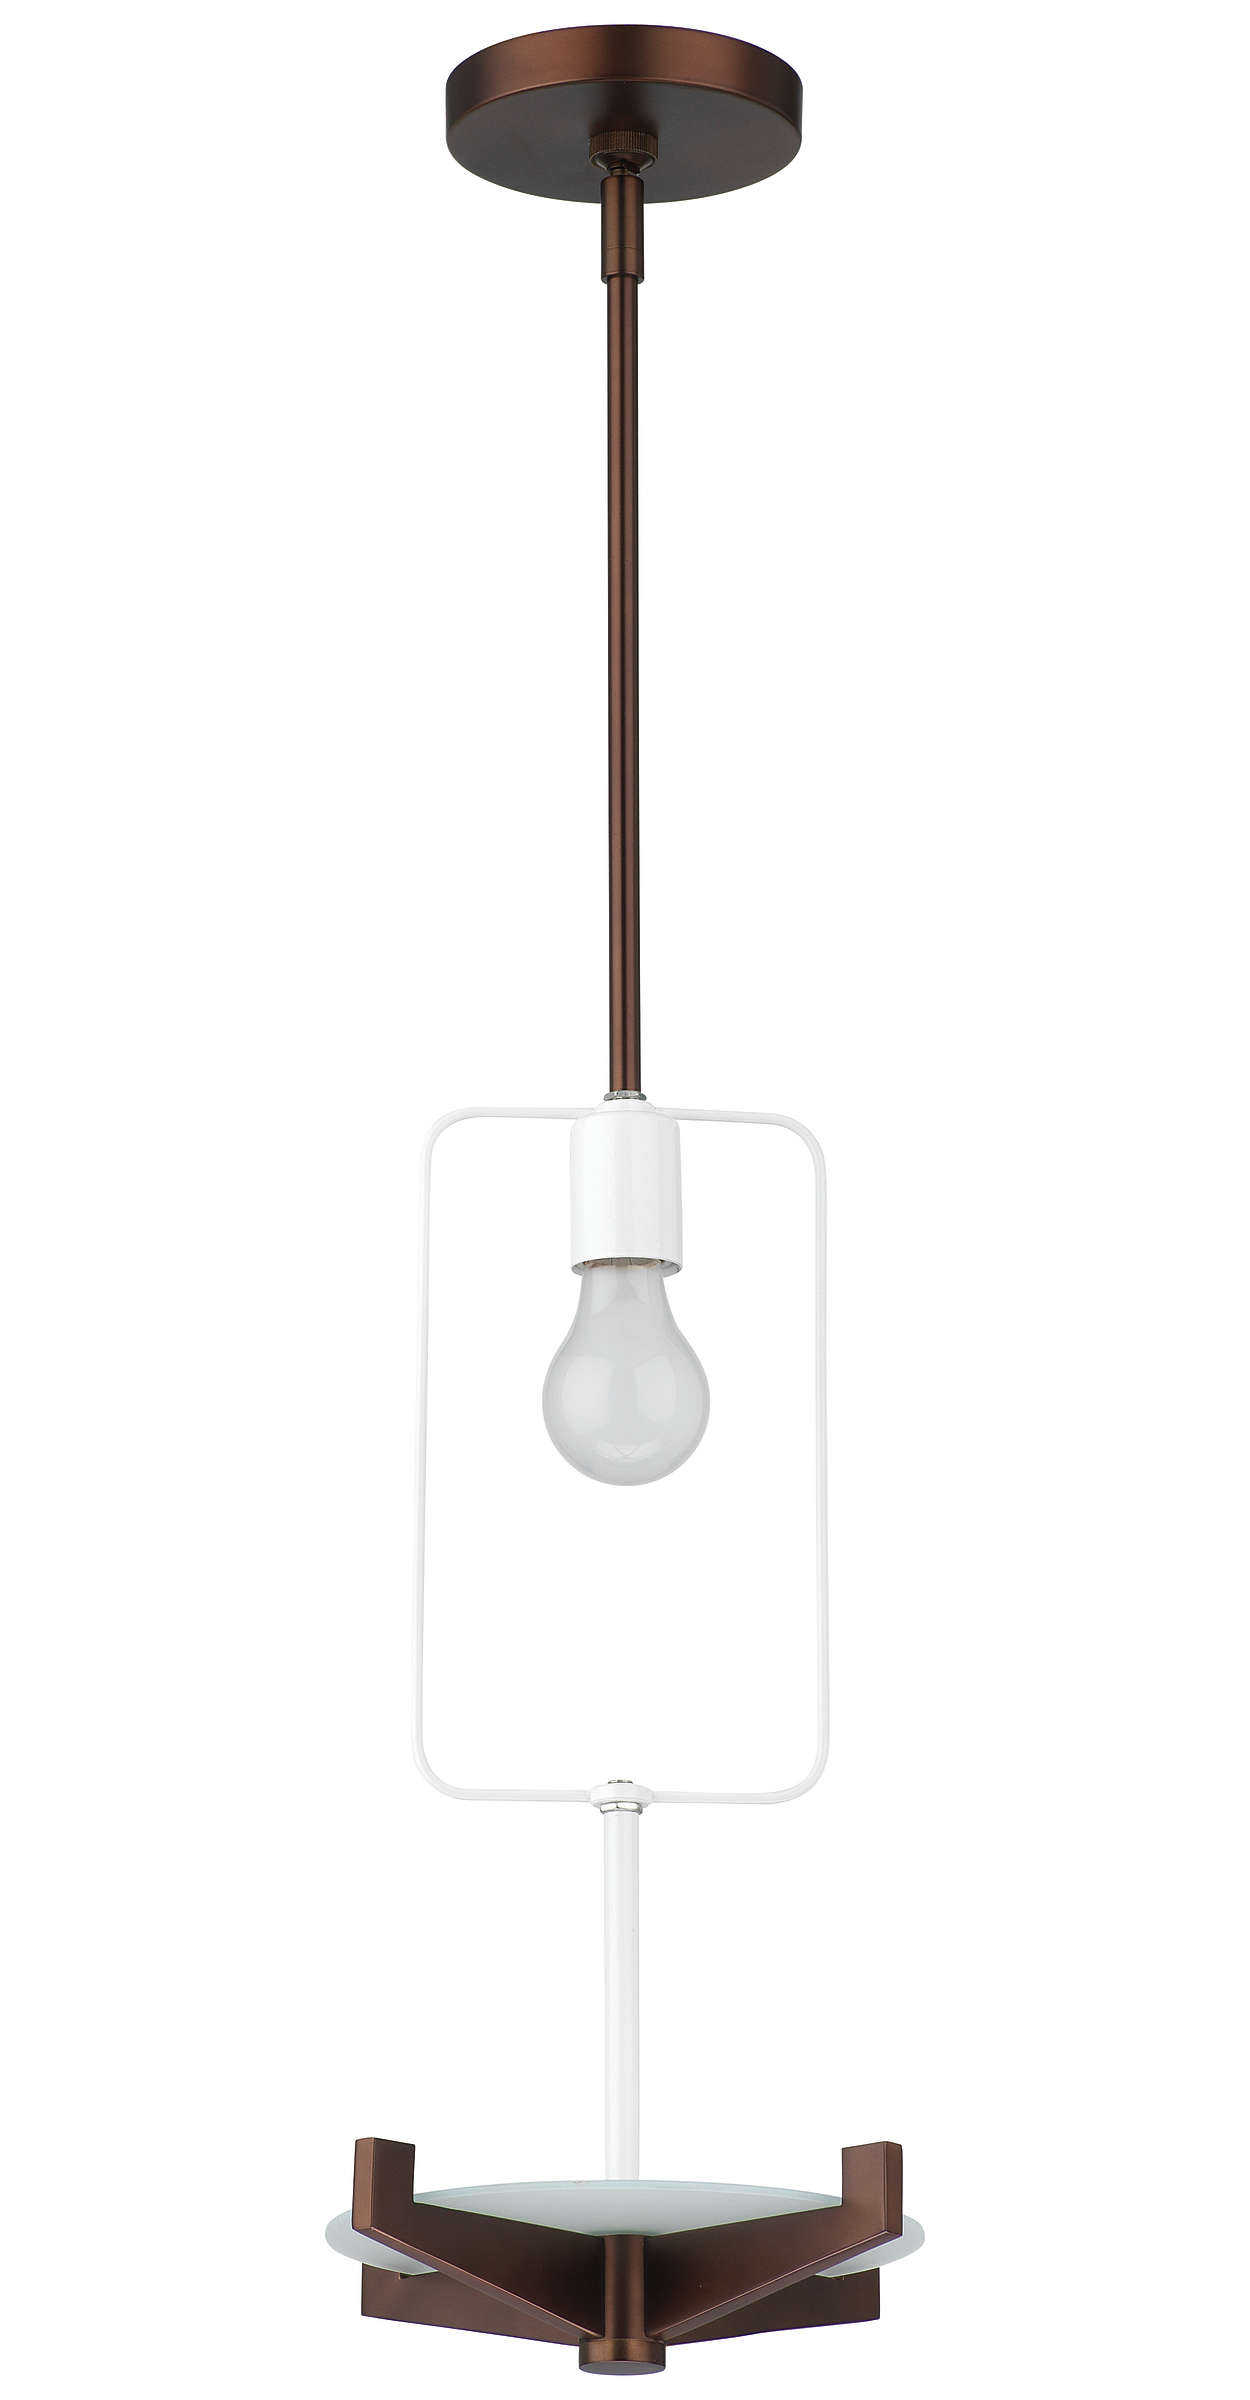 Fisher Island 1-light Pendant, Merlot Bronze